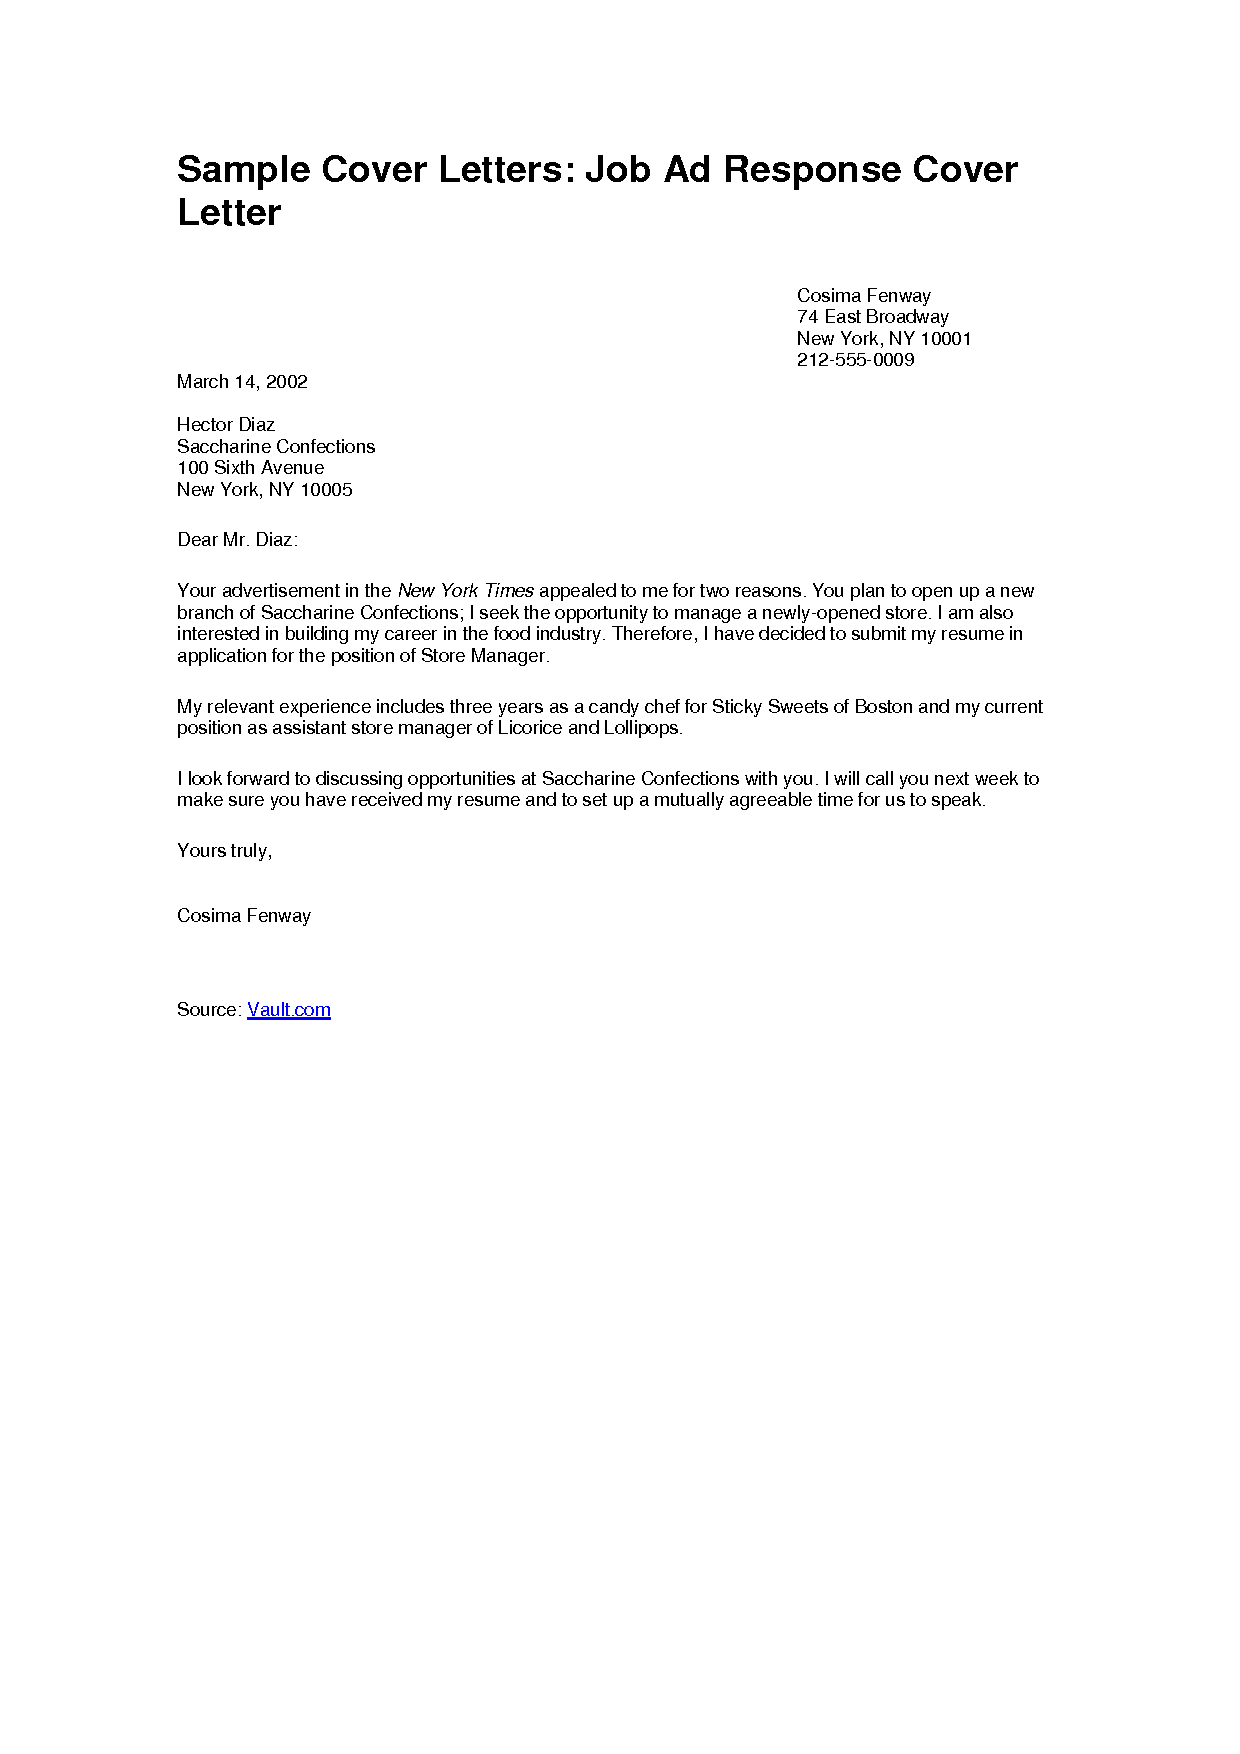 Sample cover letter for applying a job for Covering letter to apply for a job